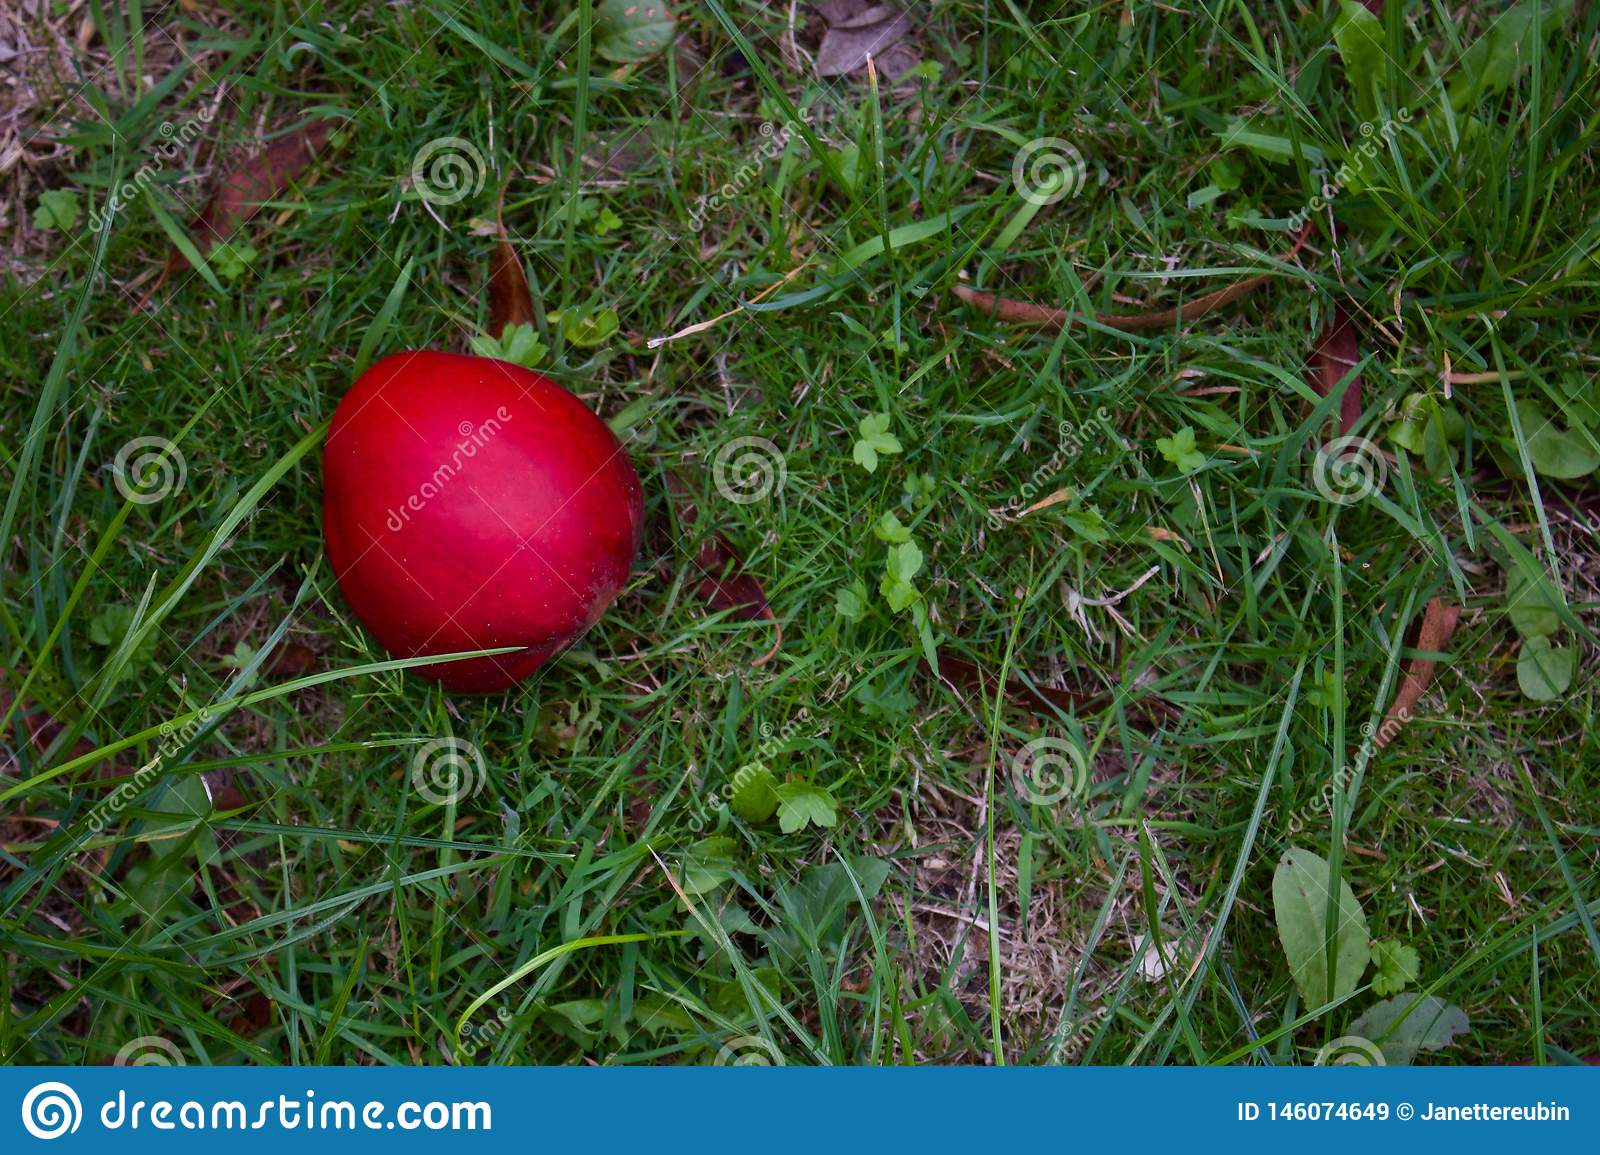 Single Red Apple Lying On Rough Grass In Autumn - Image